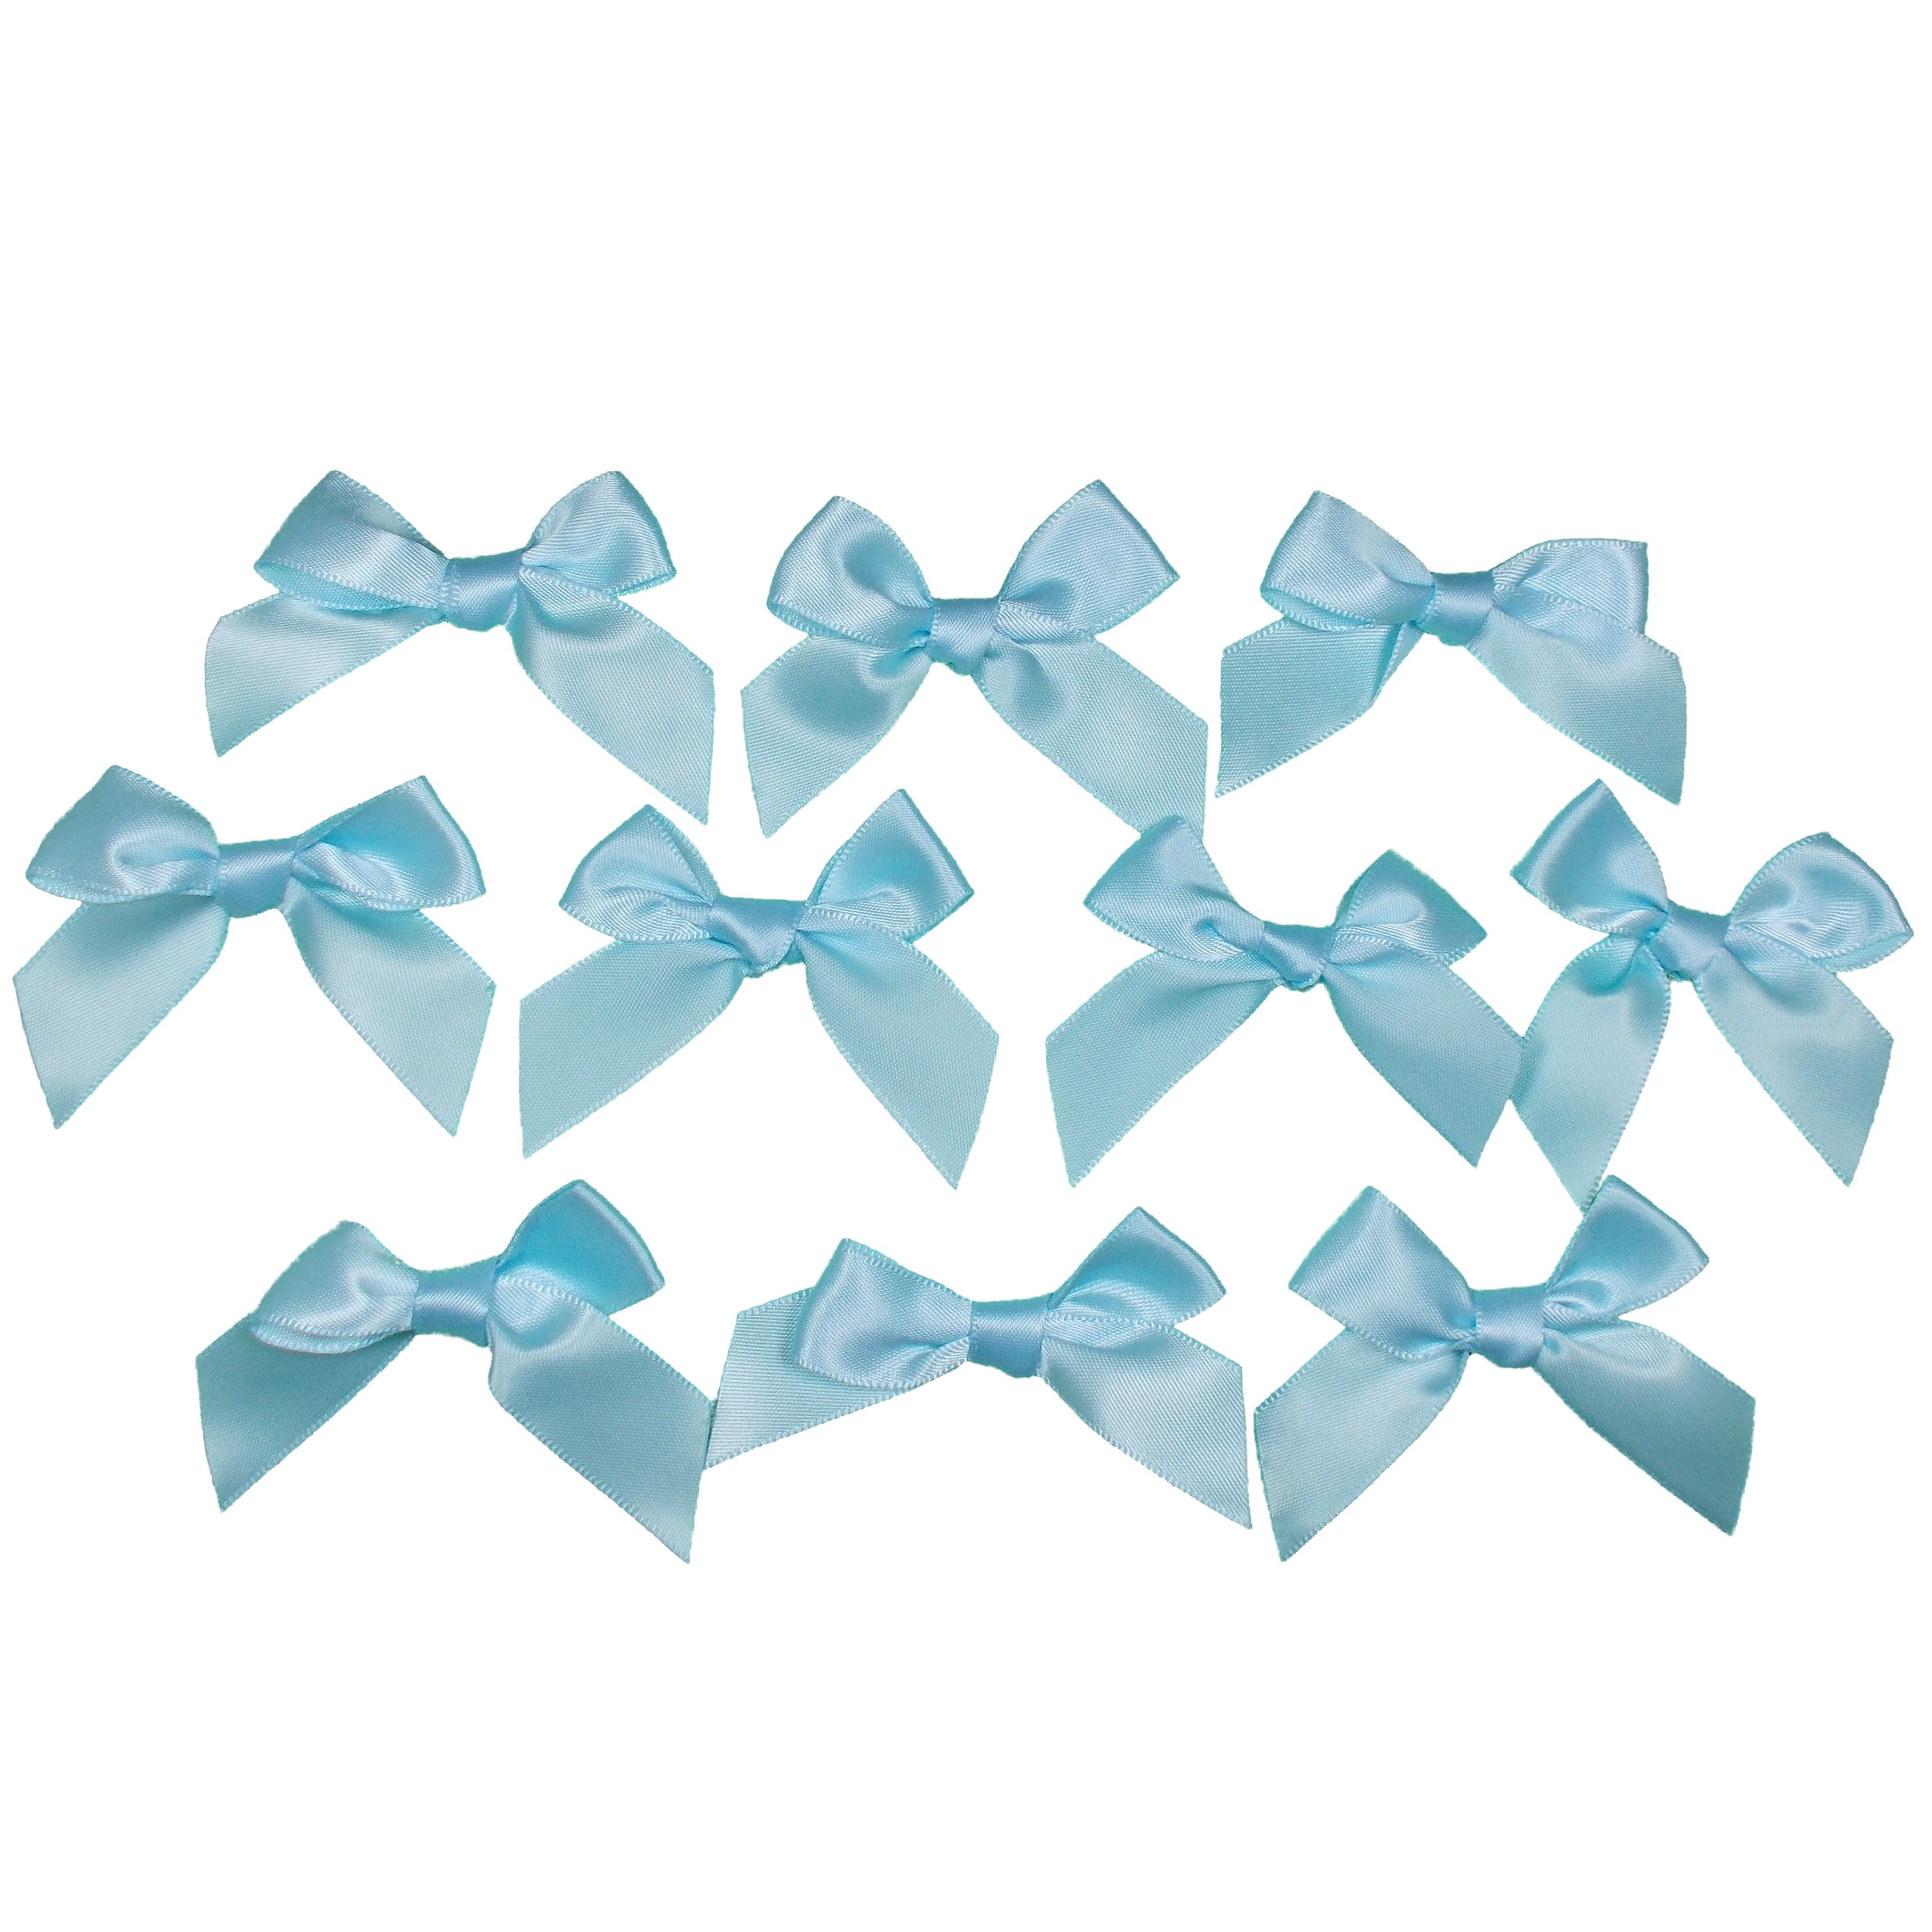 Satin Ribbon Bows approx 5.5cm wide Pale Blue Pack of 10